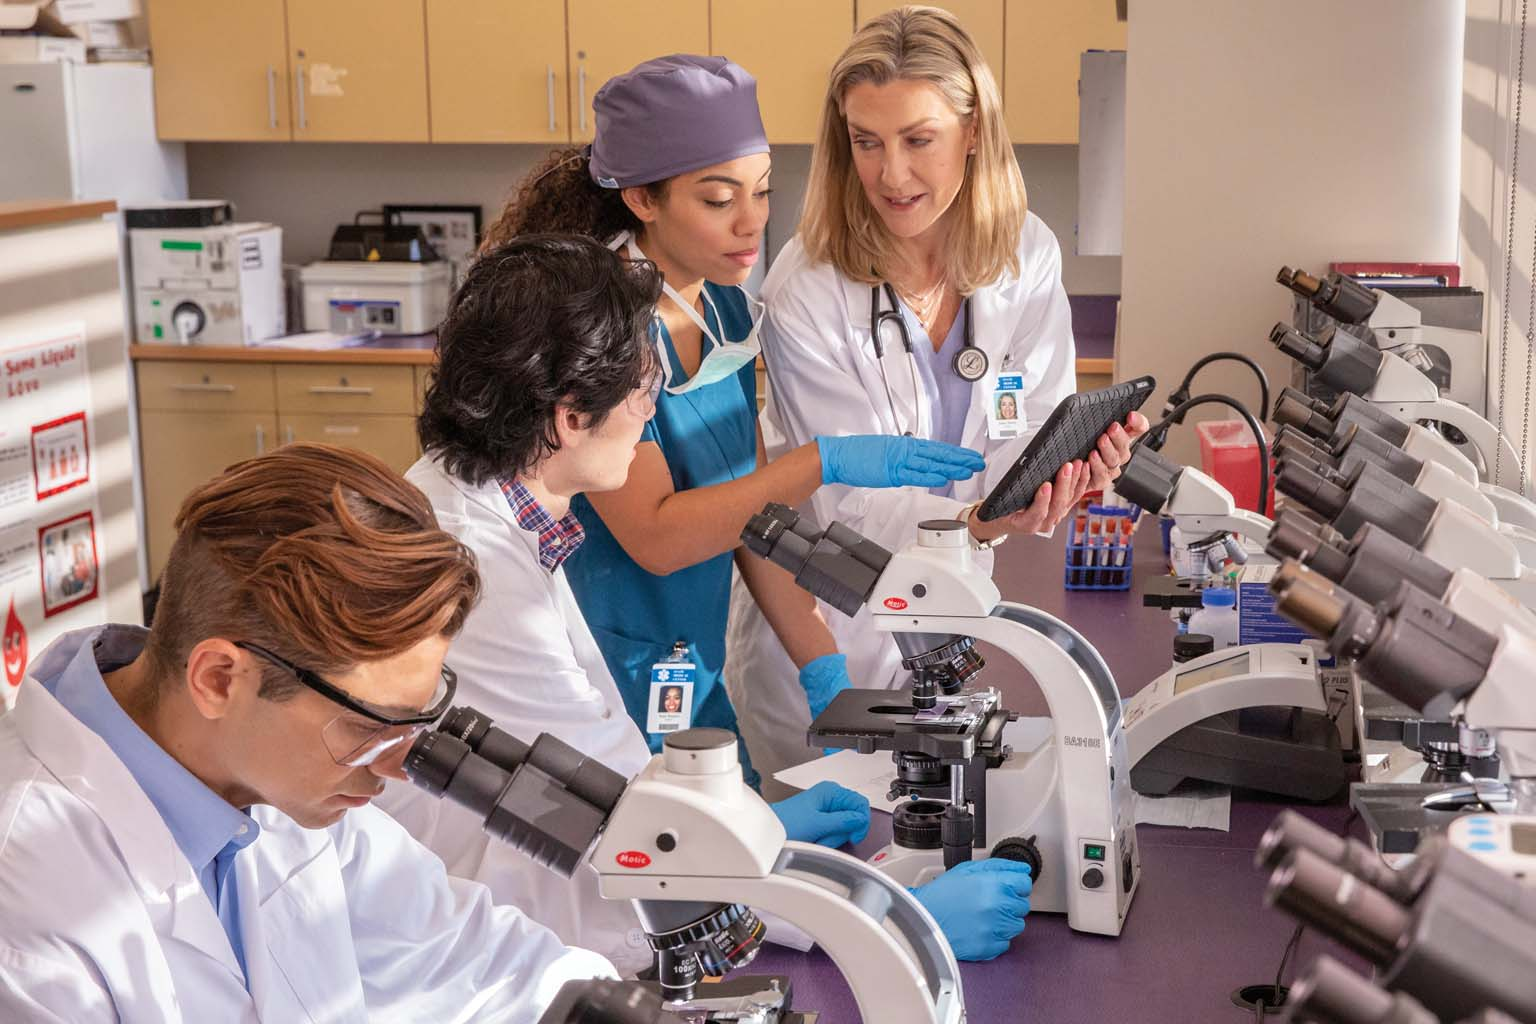 technicians, nurse, and doctor in lab